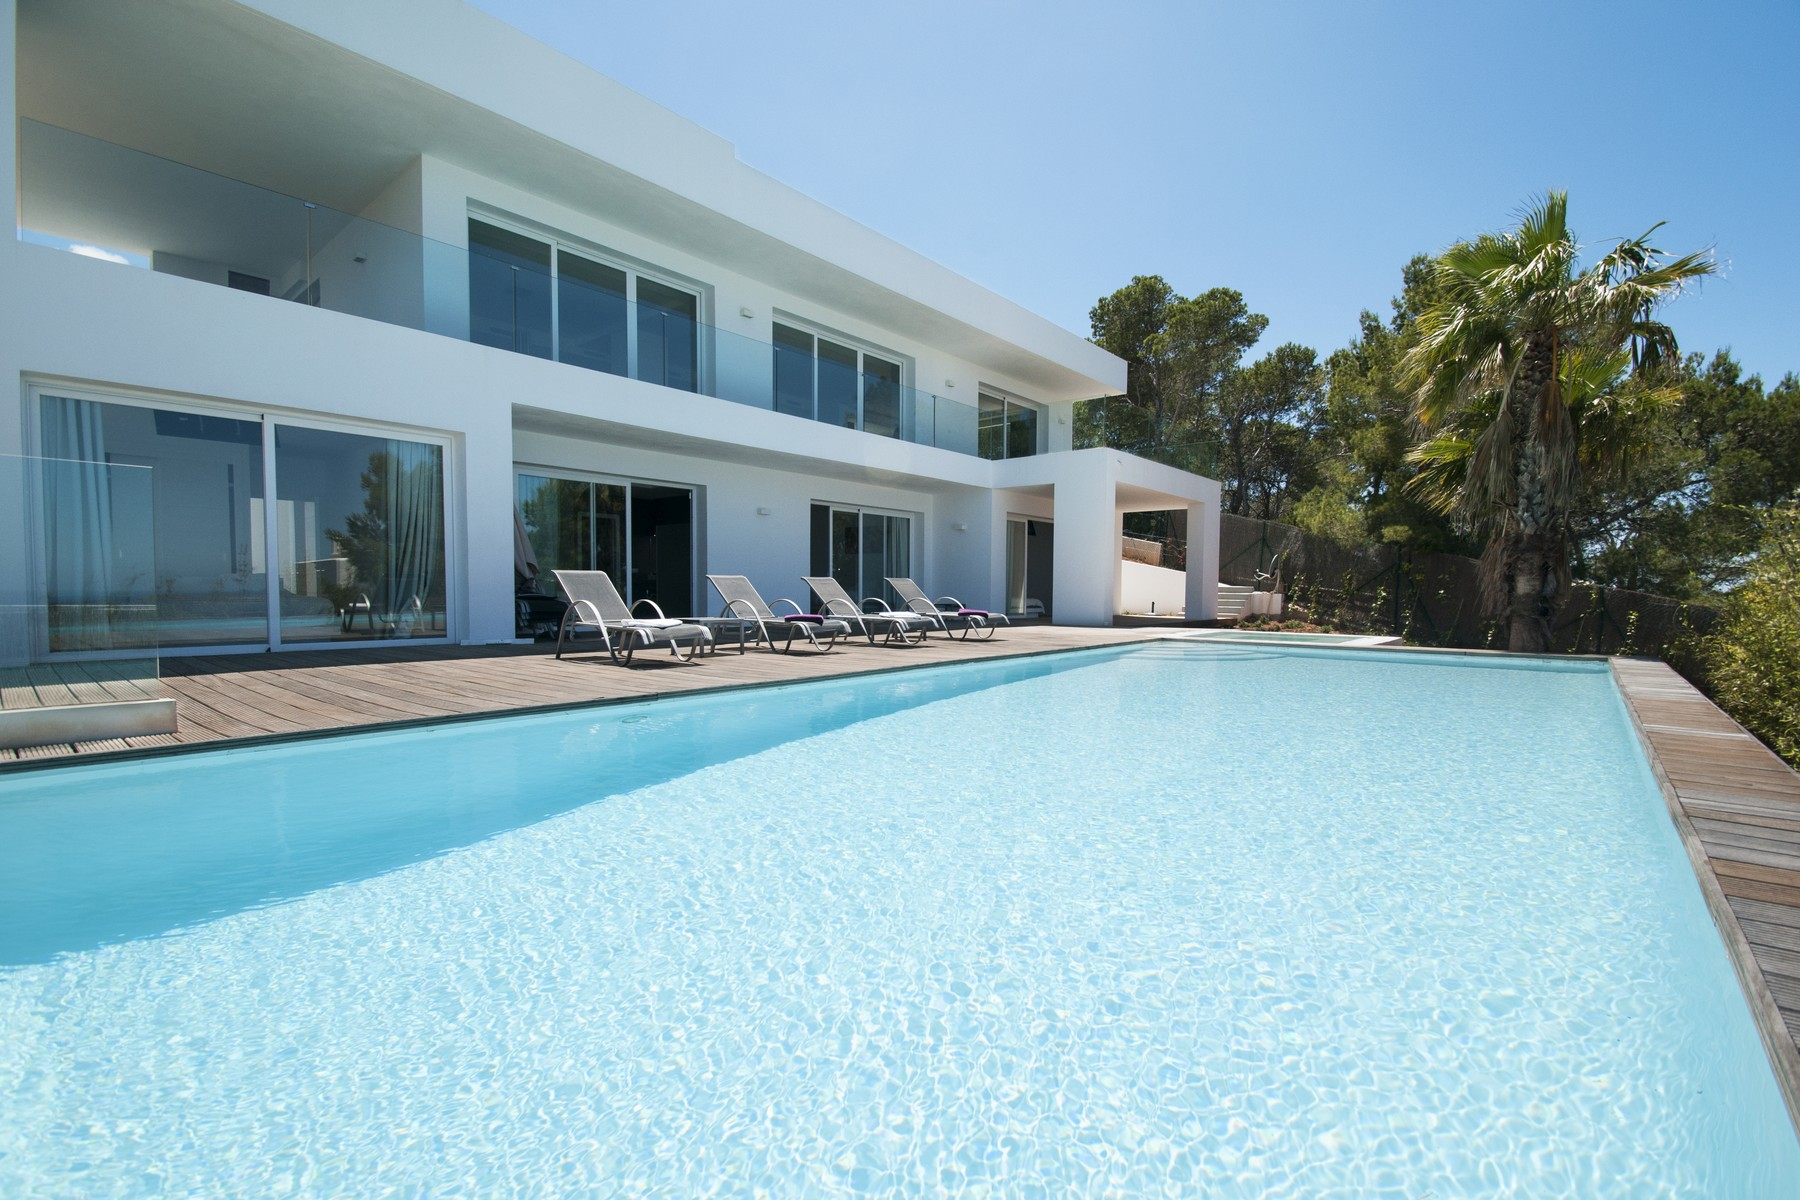 Maison unifamiliale pour l Vente à Two Home Property with sea view in Cala Molí San Jose, Ibiza, 07830 Espagne